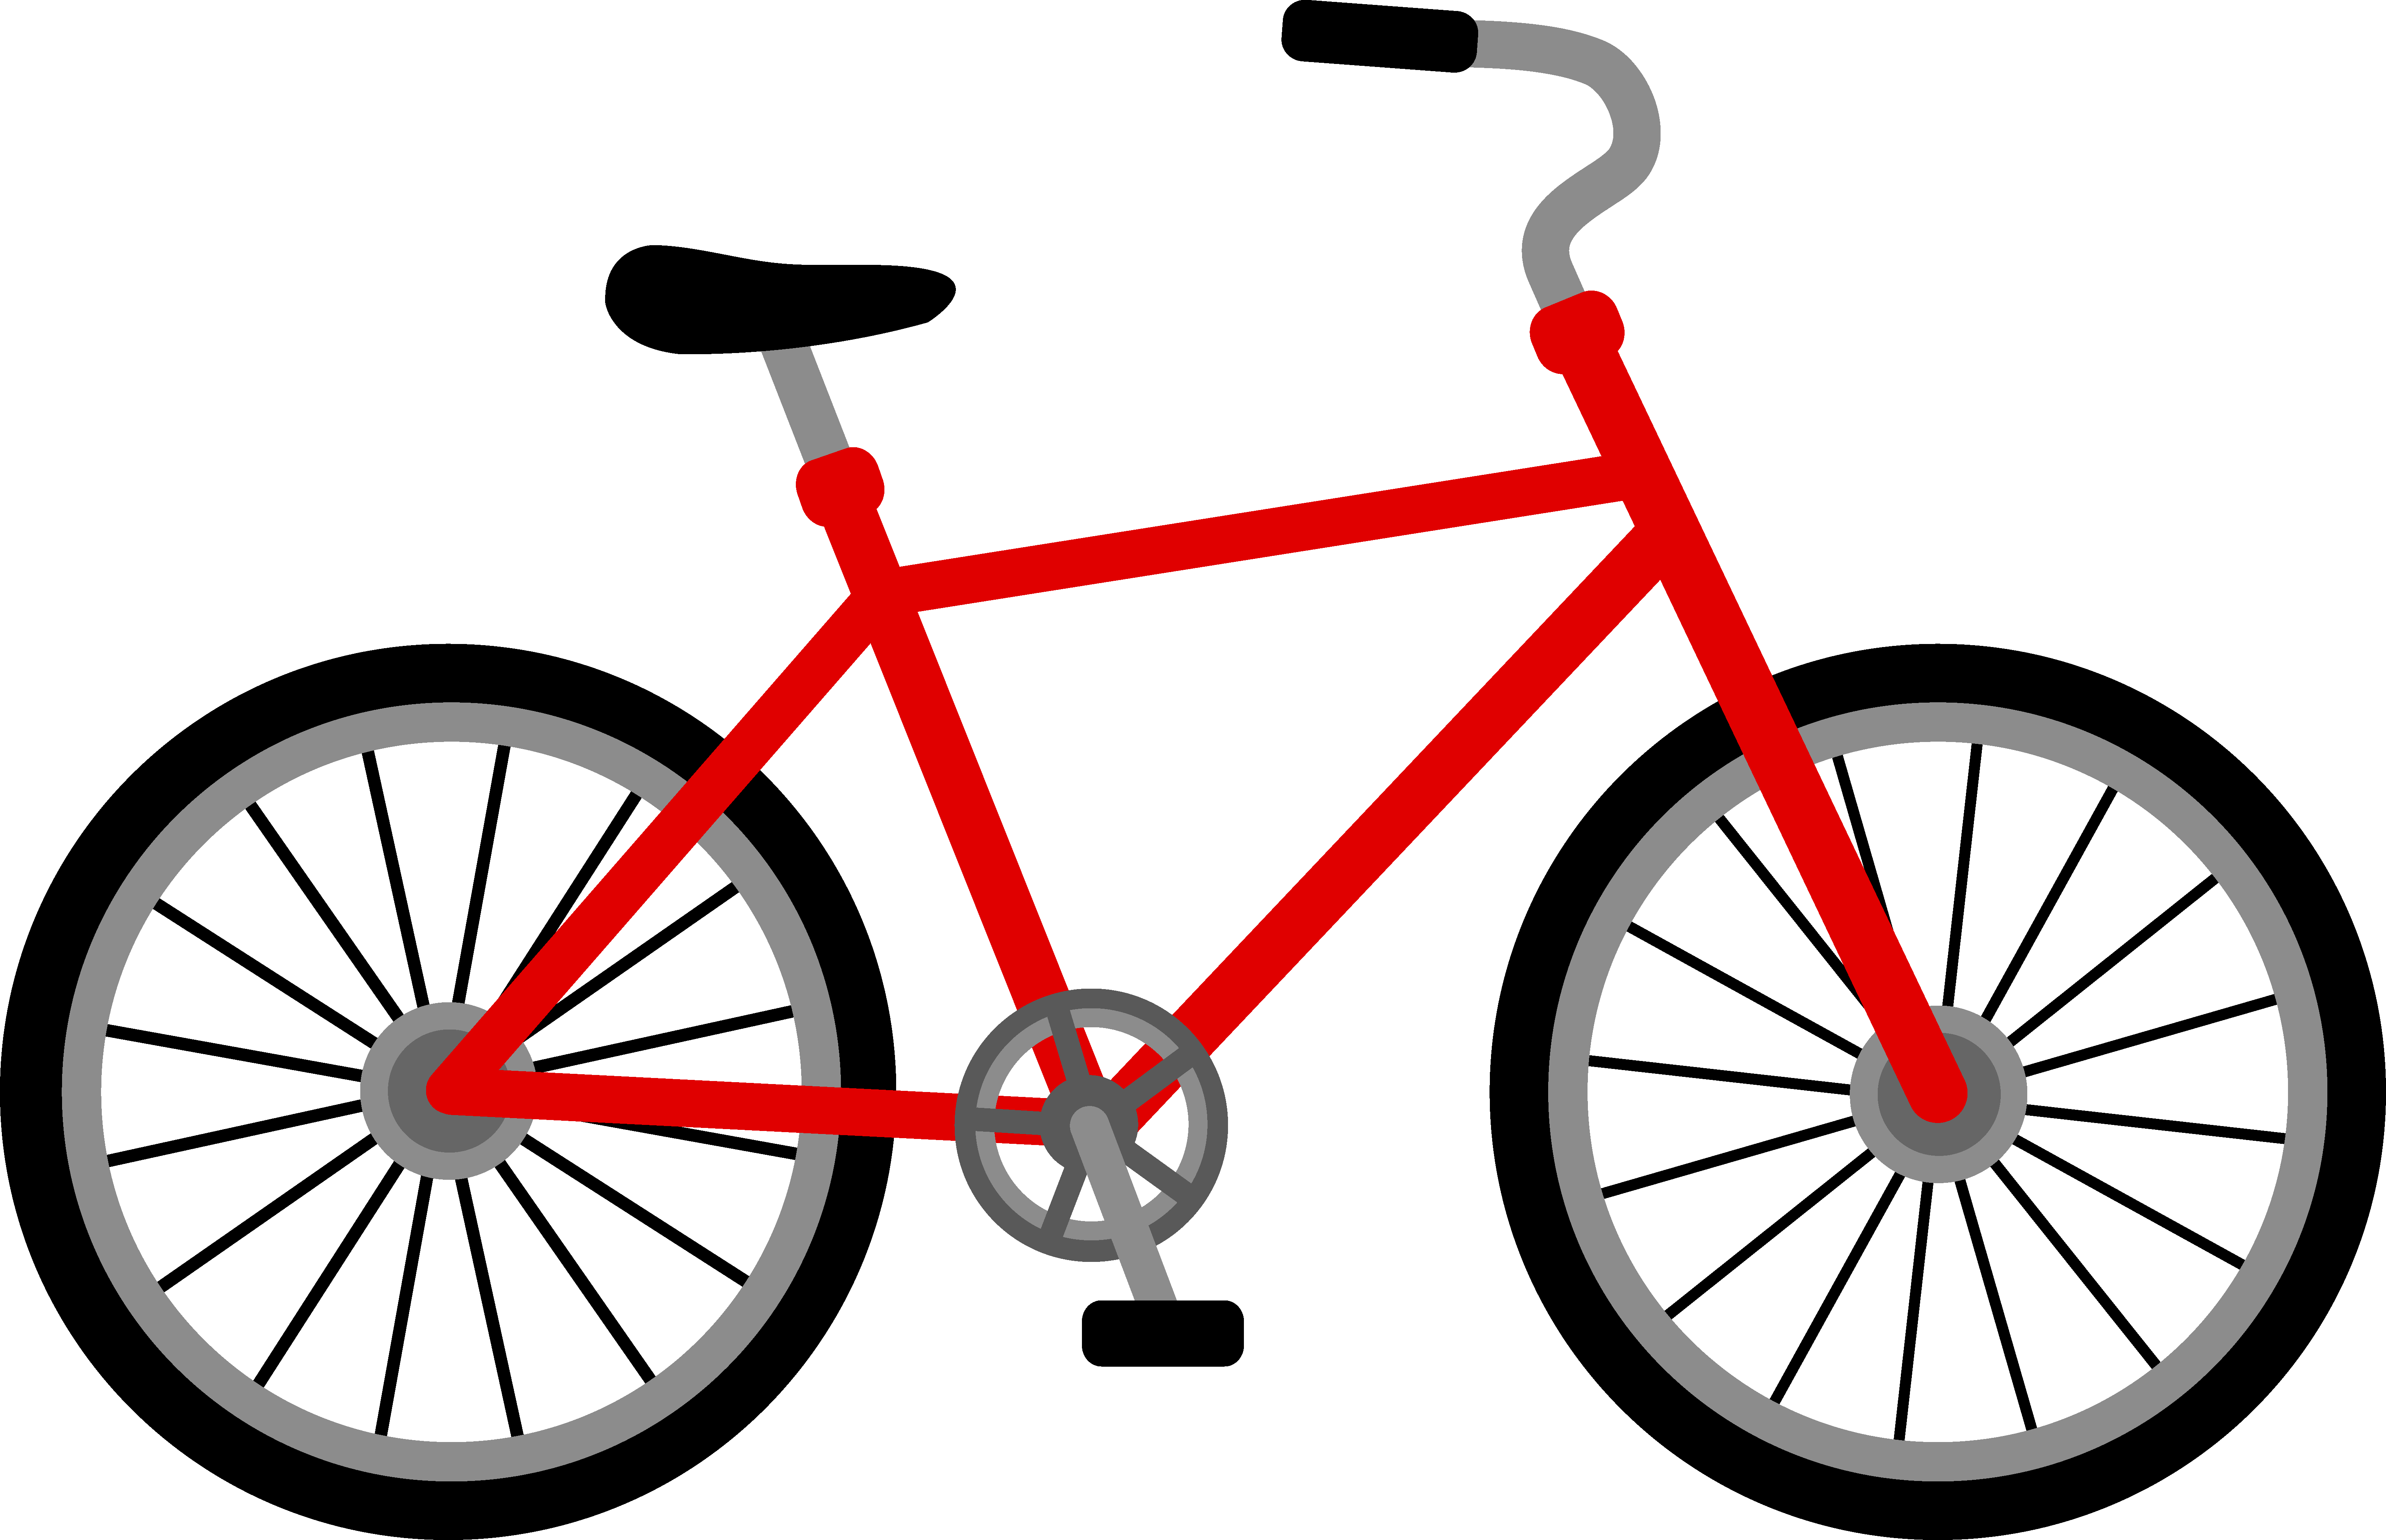 Bike clipart png. Desktop backgrounds bicycle free